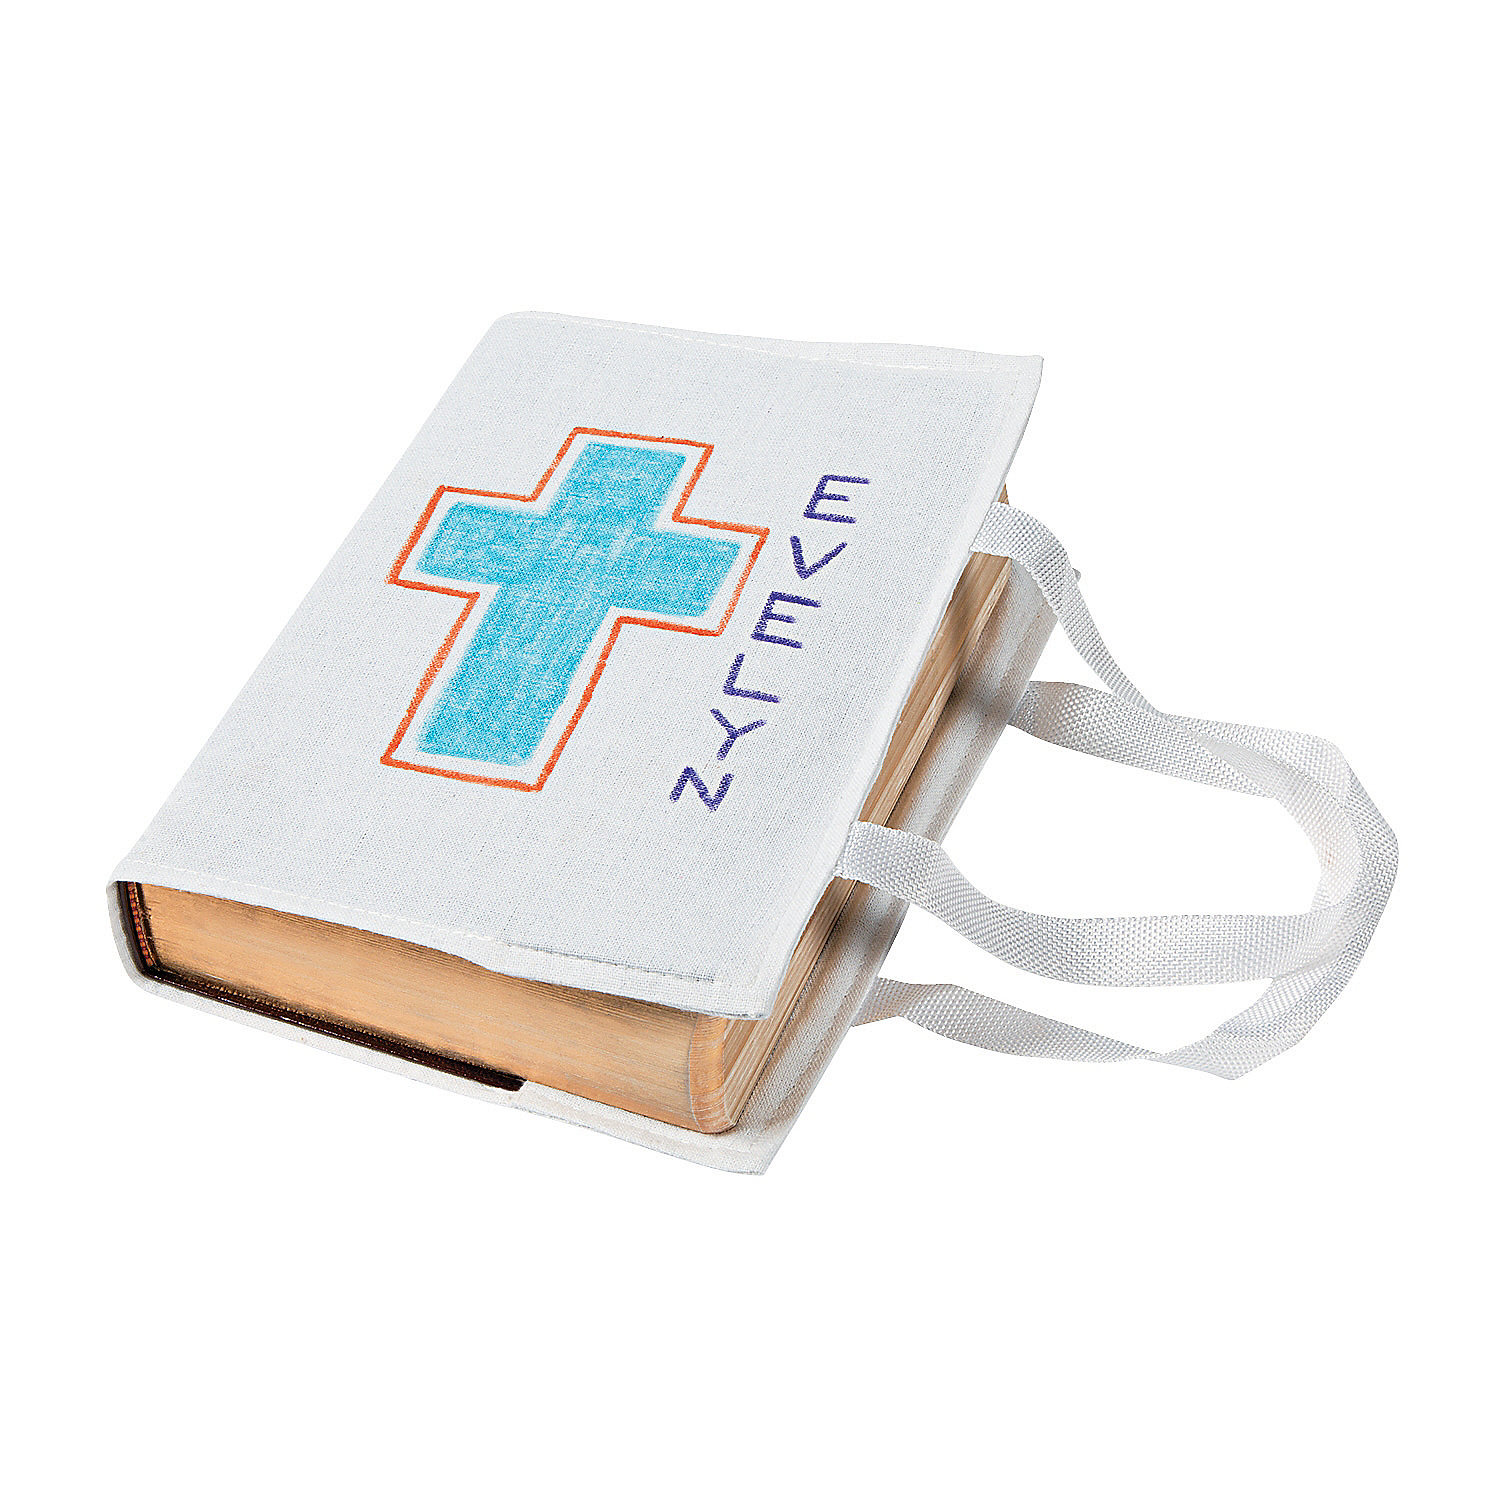 Diy white canvas bible bags diy crafts crafts for kids for Craft and hobby supplies